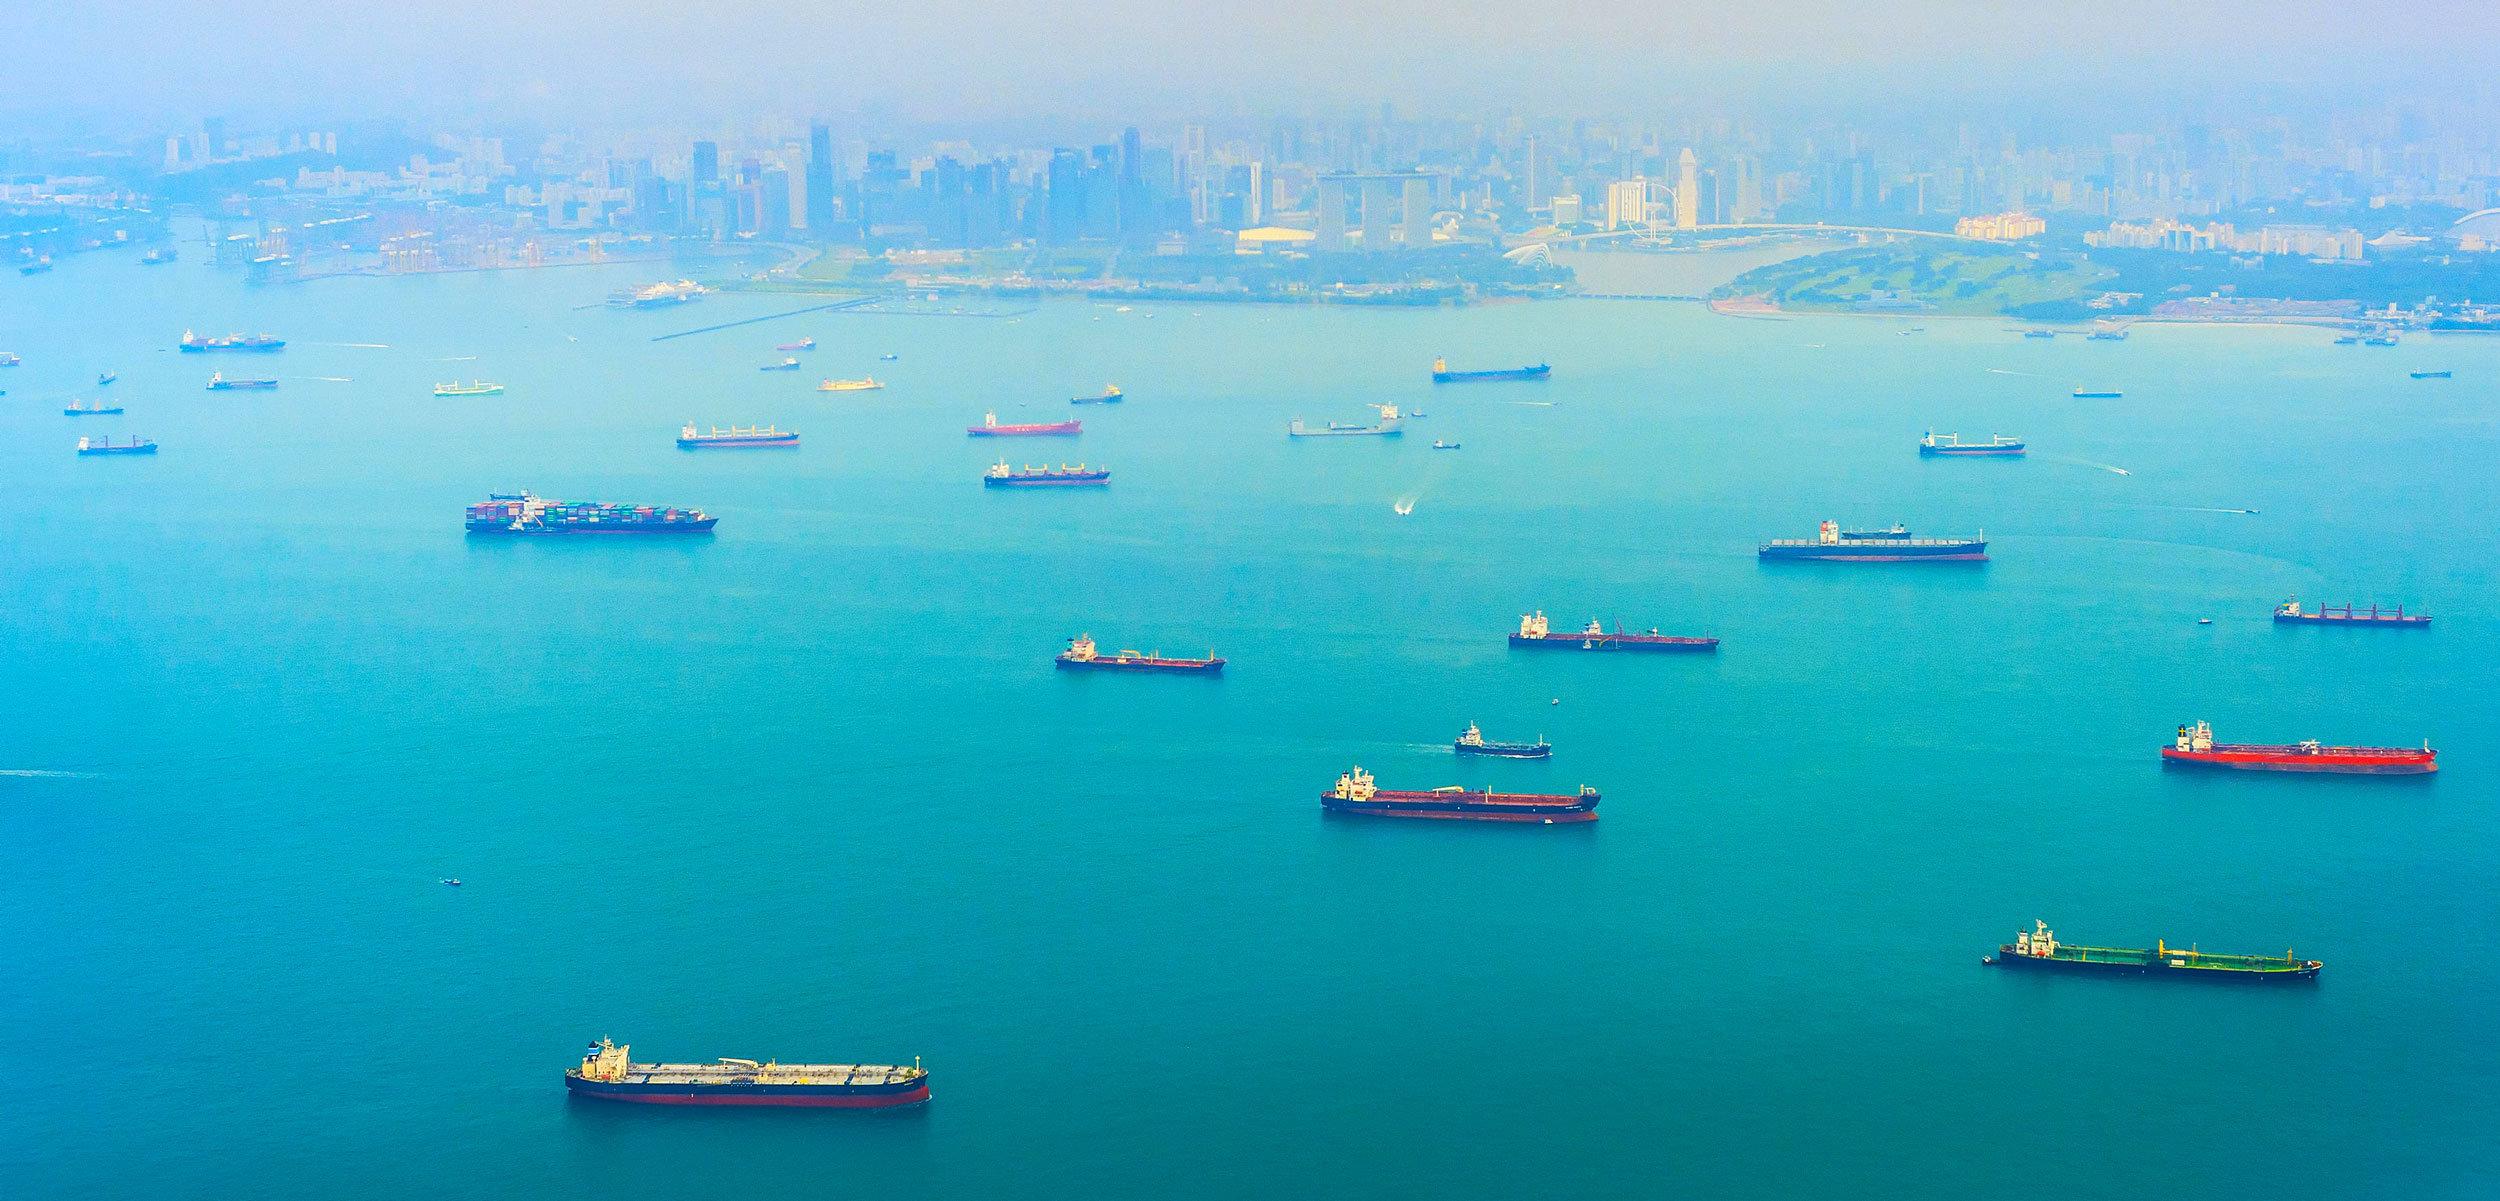 Aerial view of Singapore harbor with cargo ships, city in the background